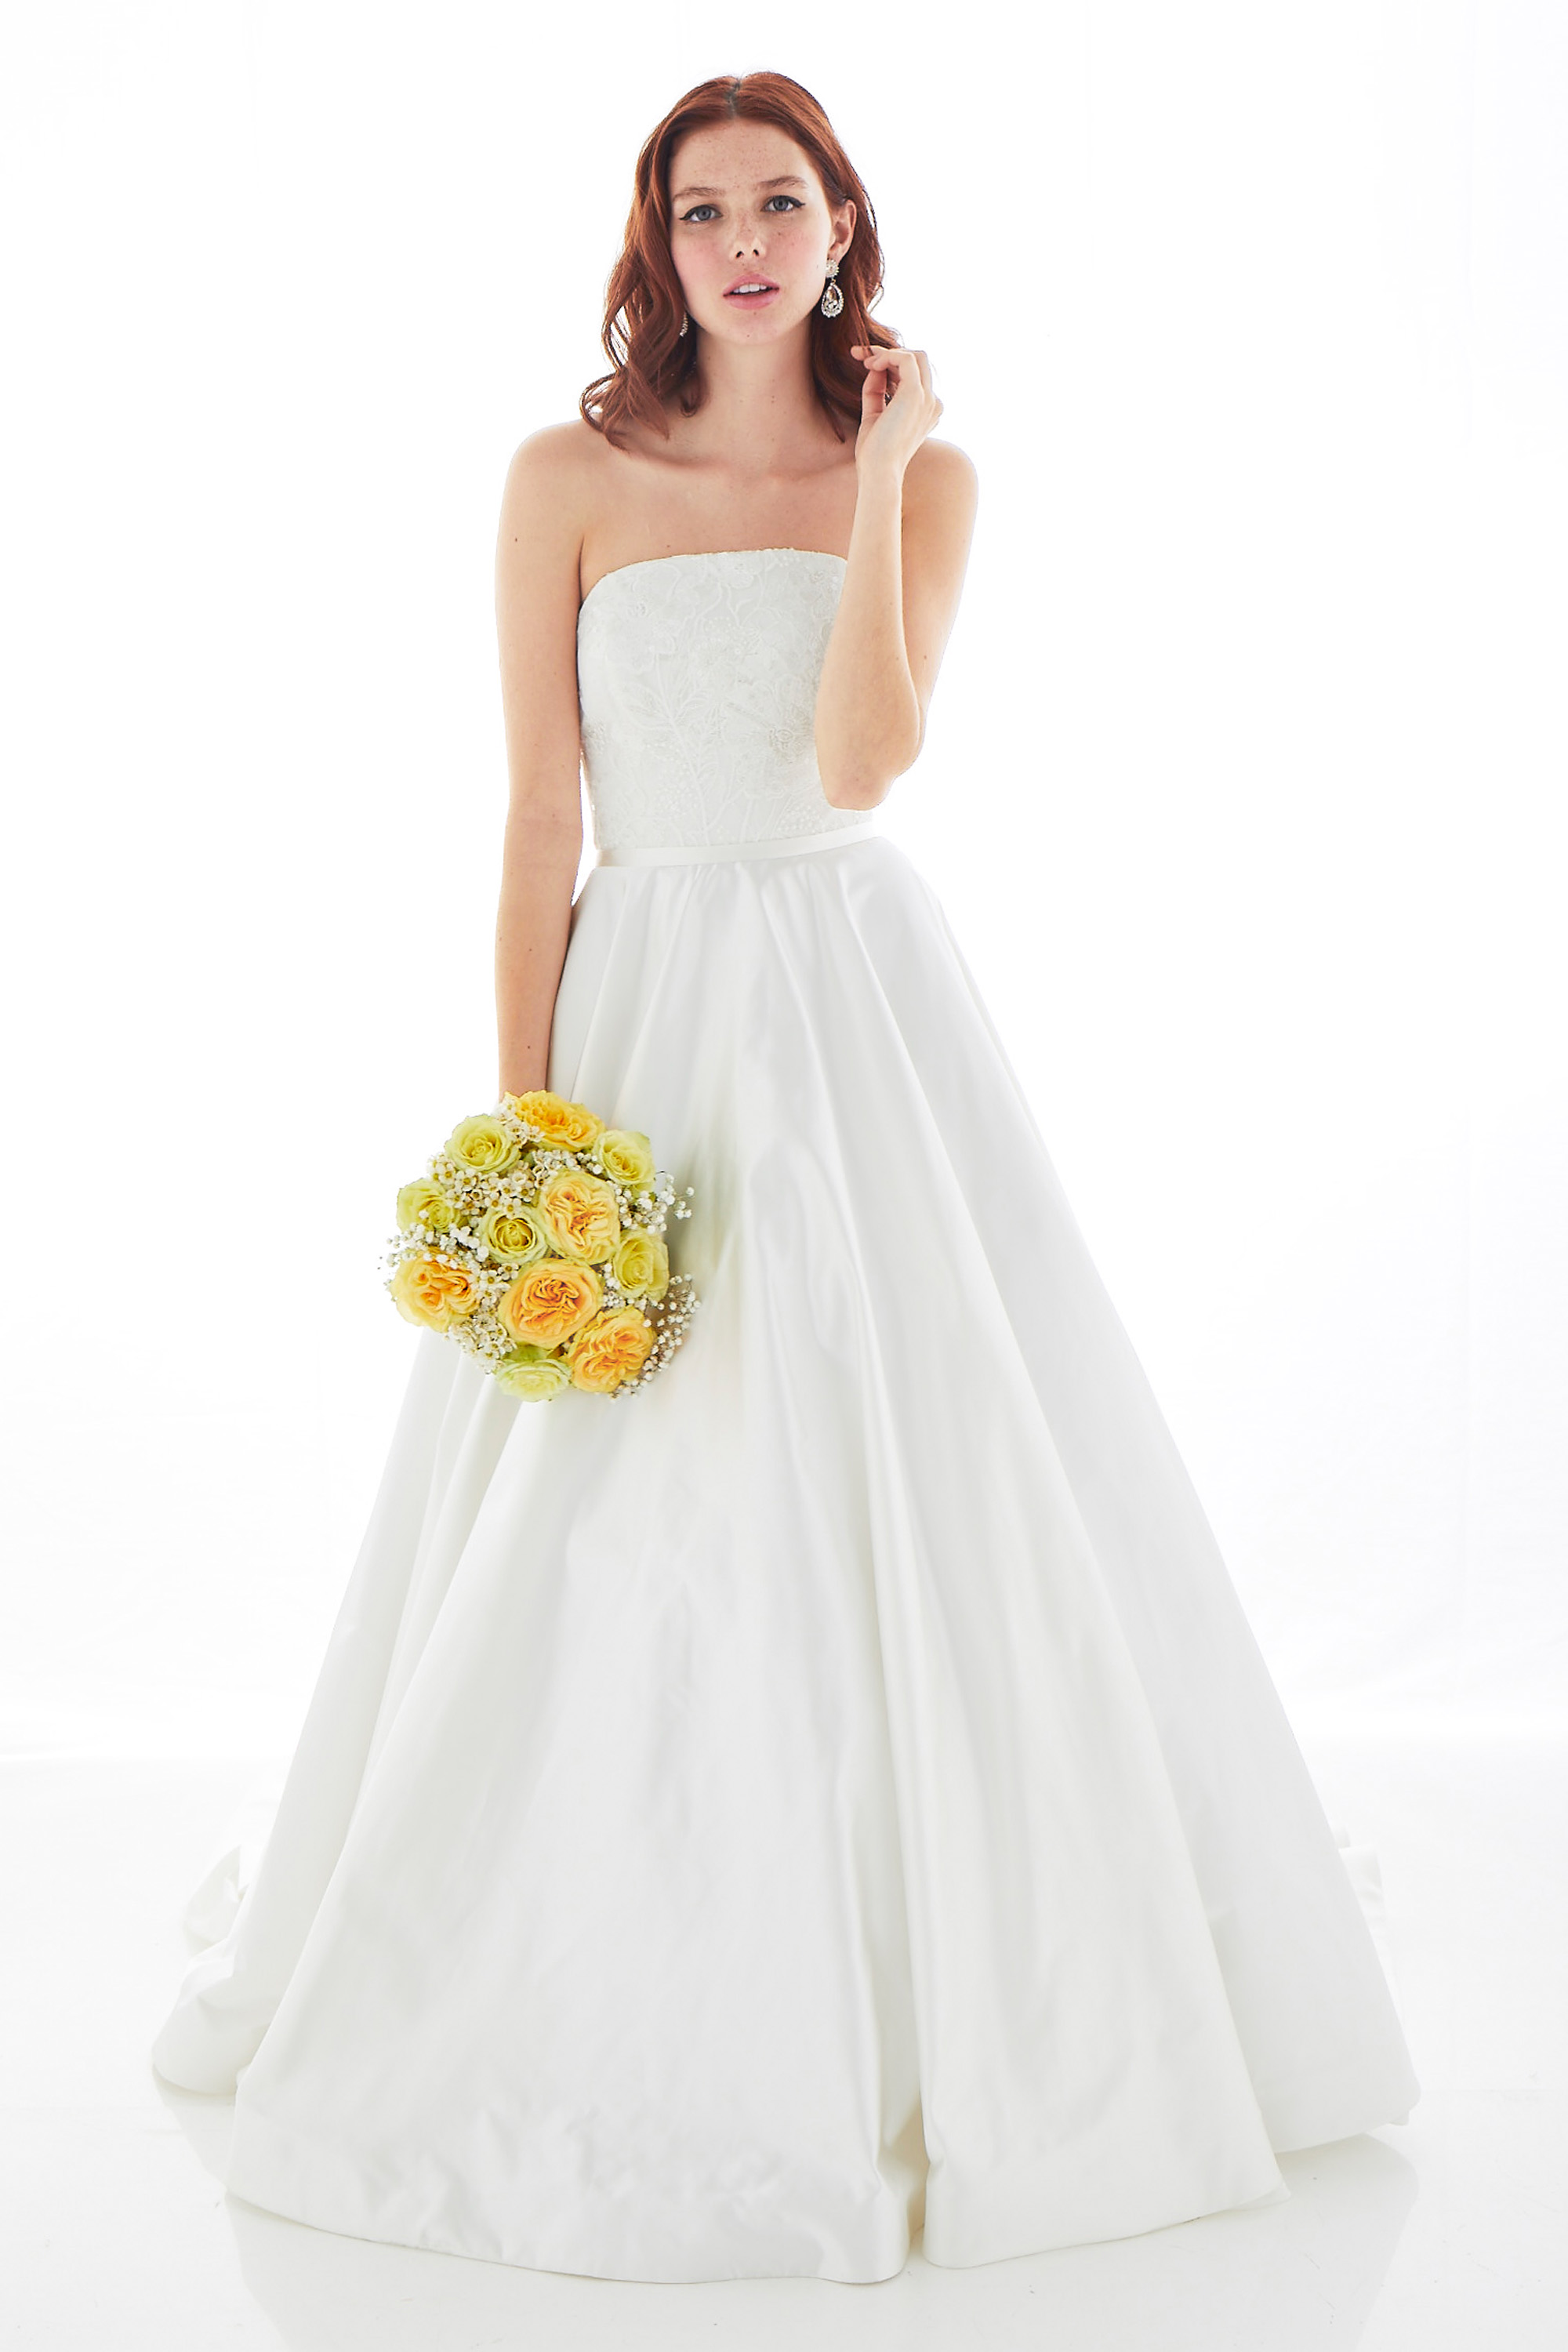 Brie gown